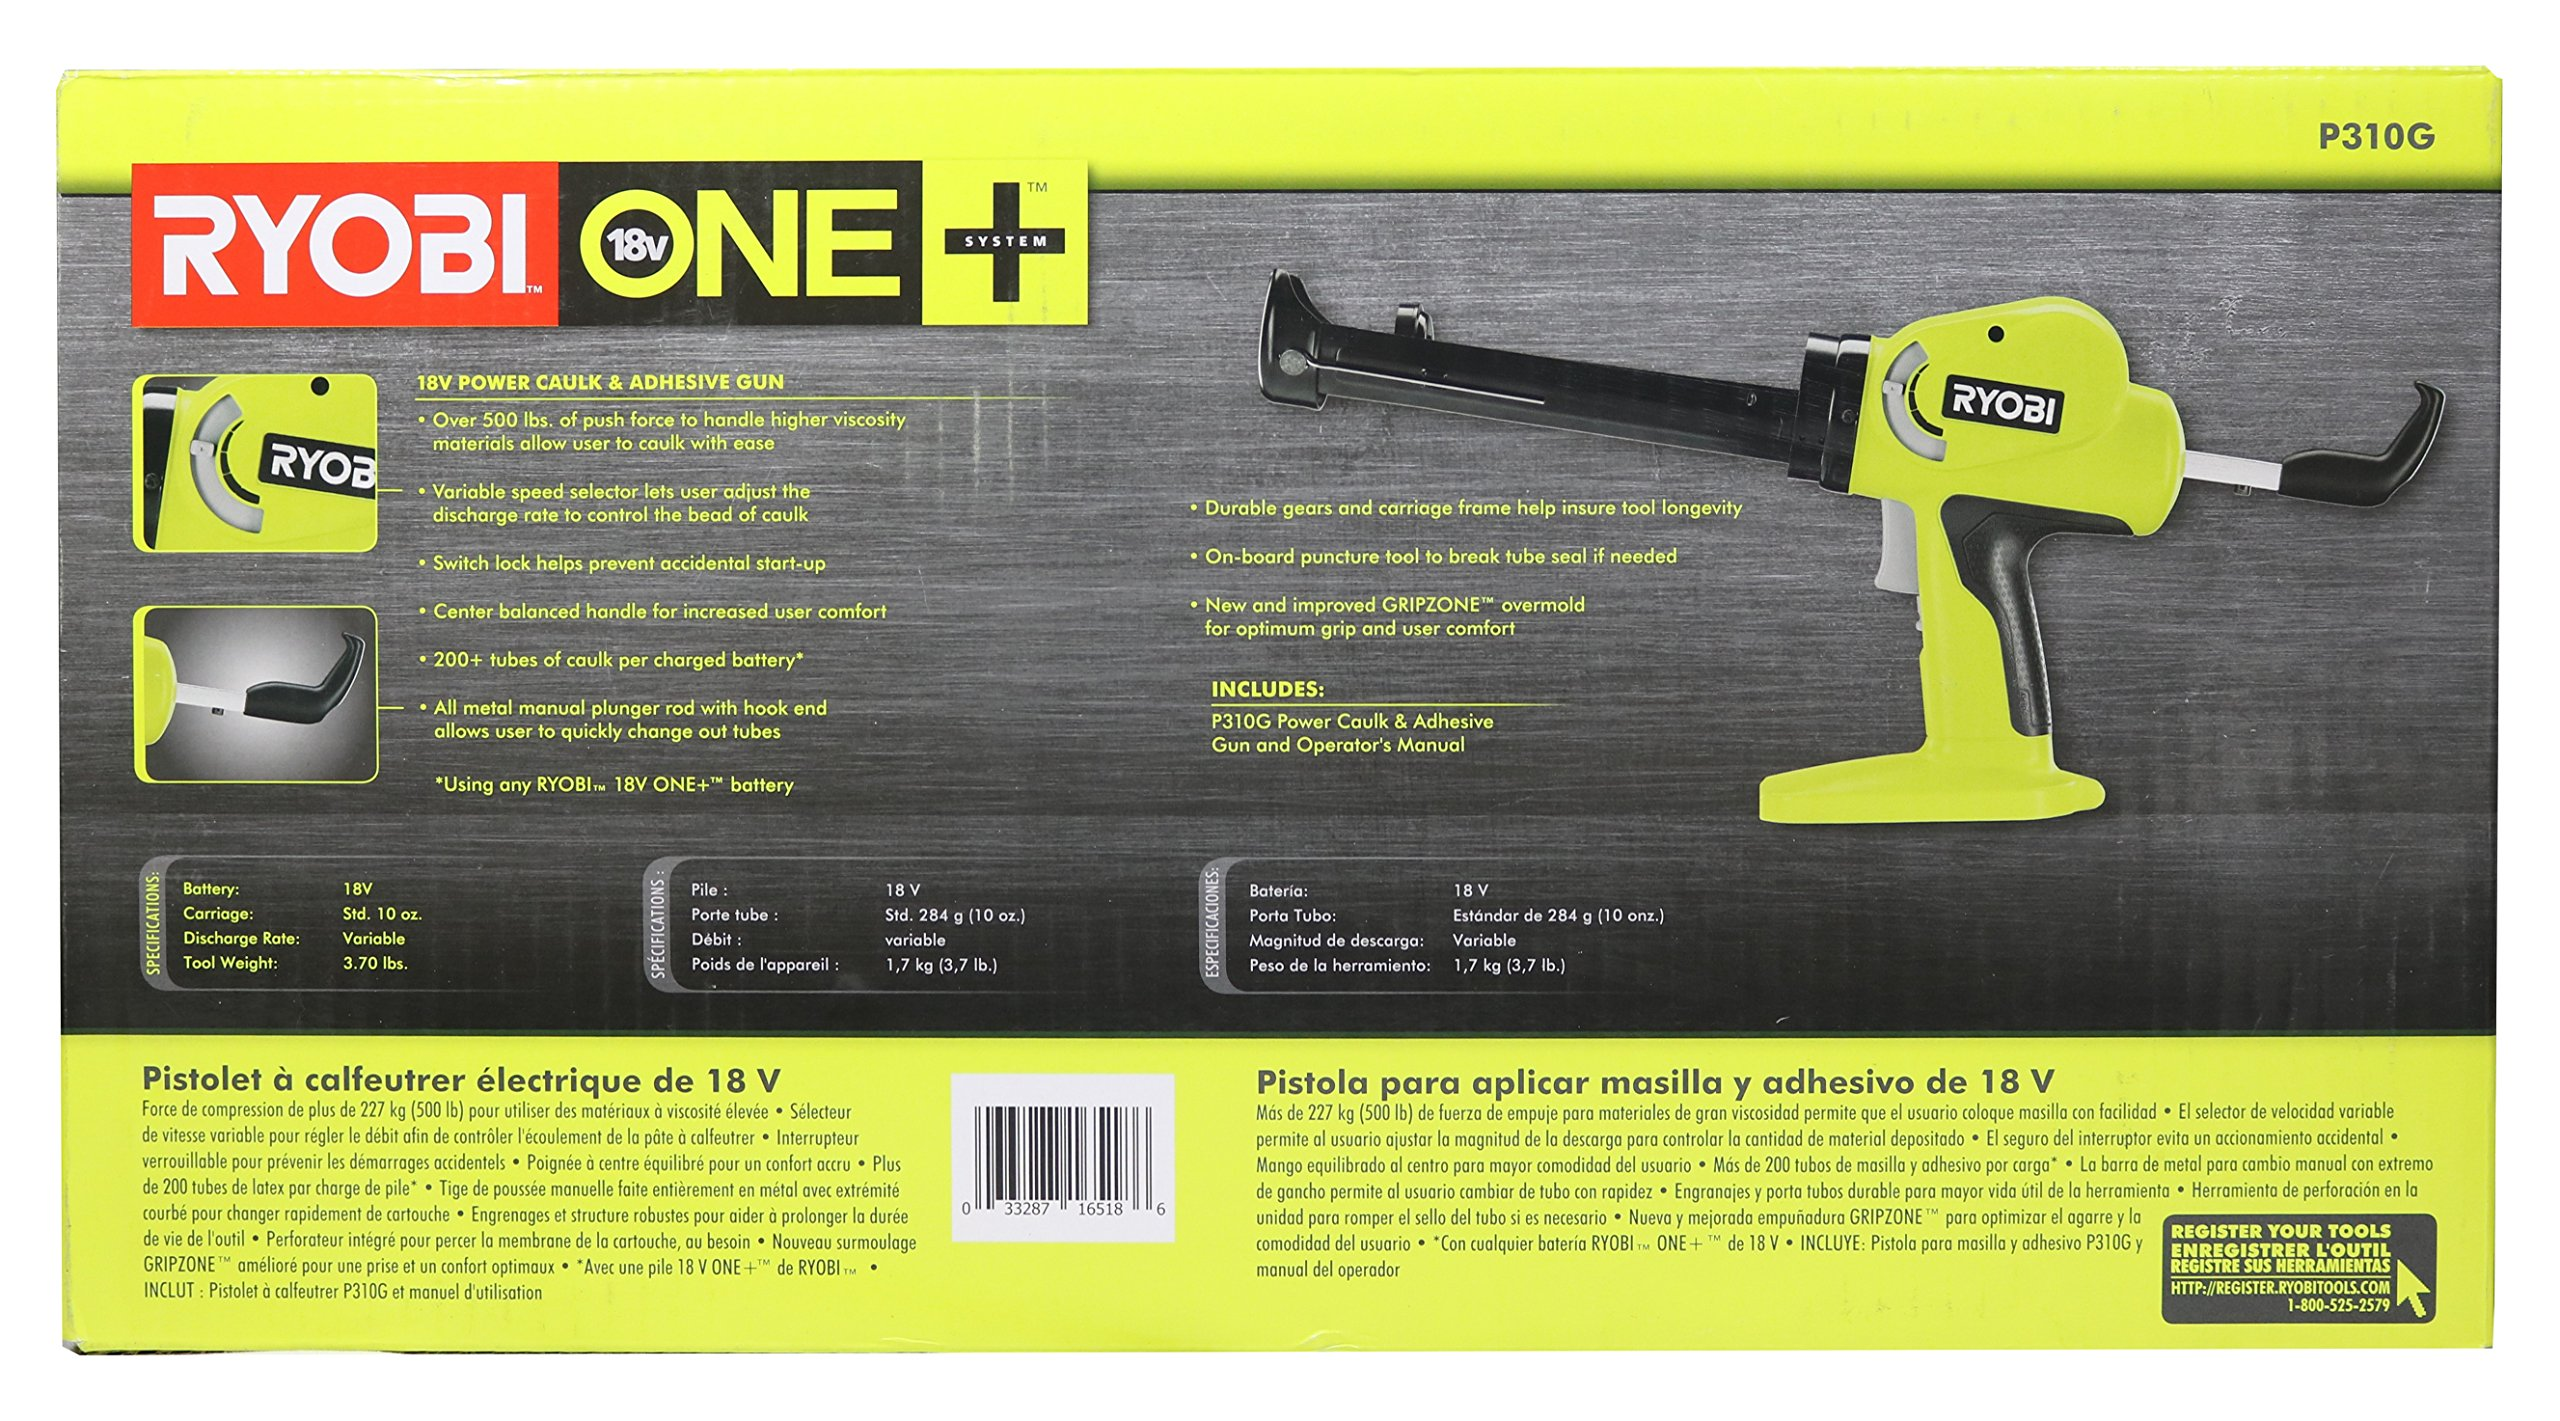 Ryobi P310G 18v Pistol Grip Variable Discharge Rate Power Caulk and Adhesive Gun (Tool Only, Holds 10 Ounce Carriage) by Ryobi (Image #9)